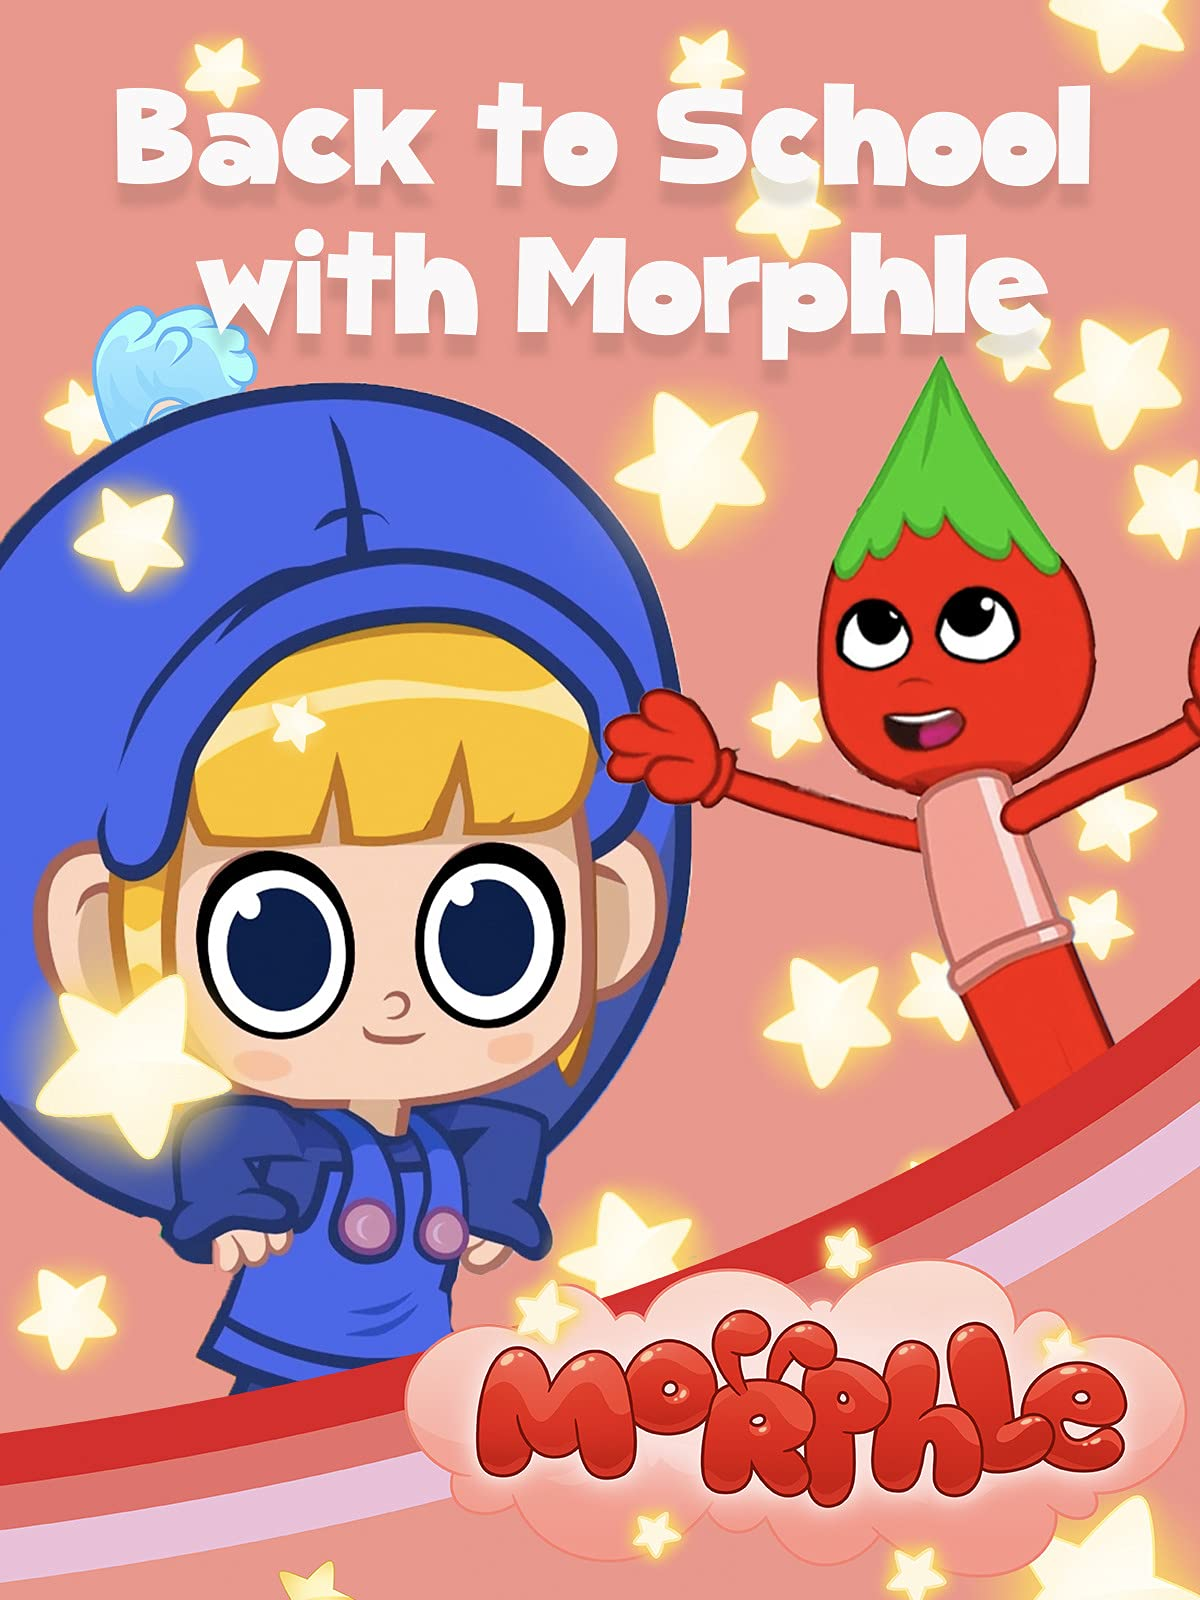 Back to School with Morphle